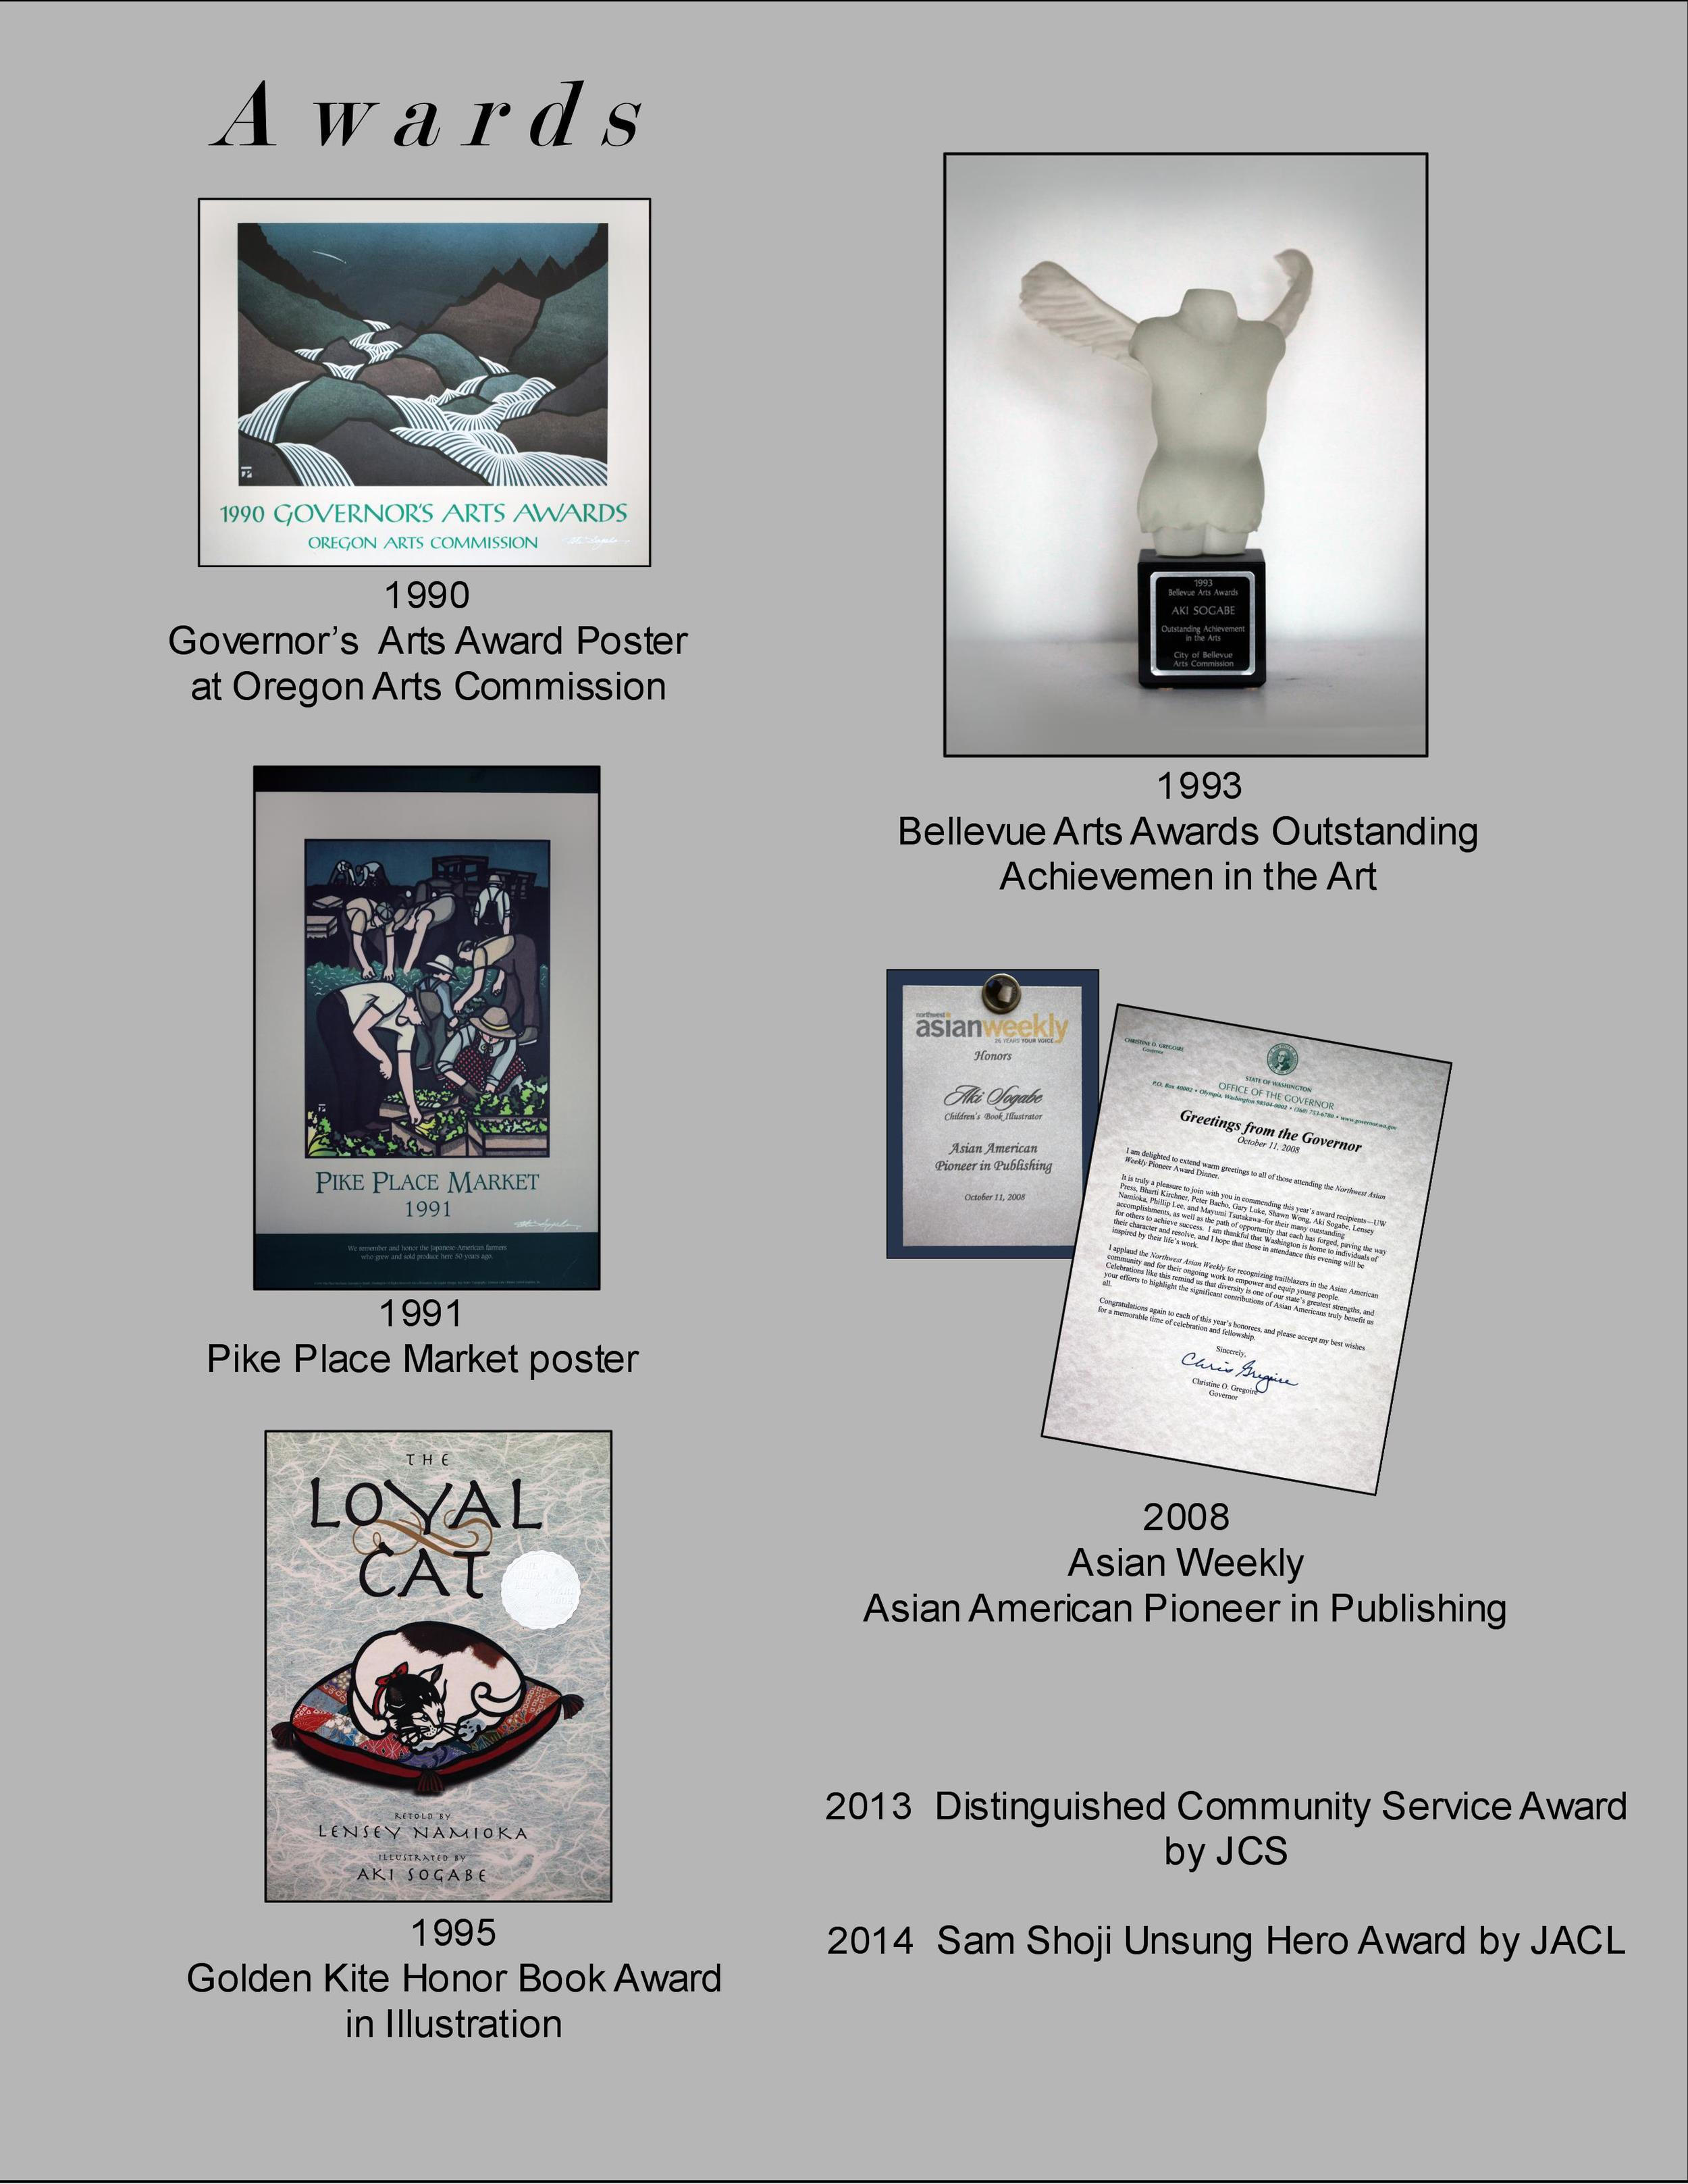 E-mail Awards pic 9.9.14 updated.jpg